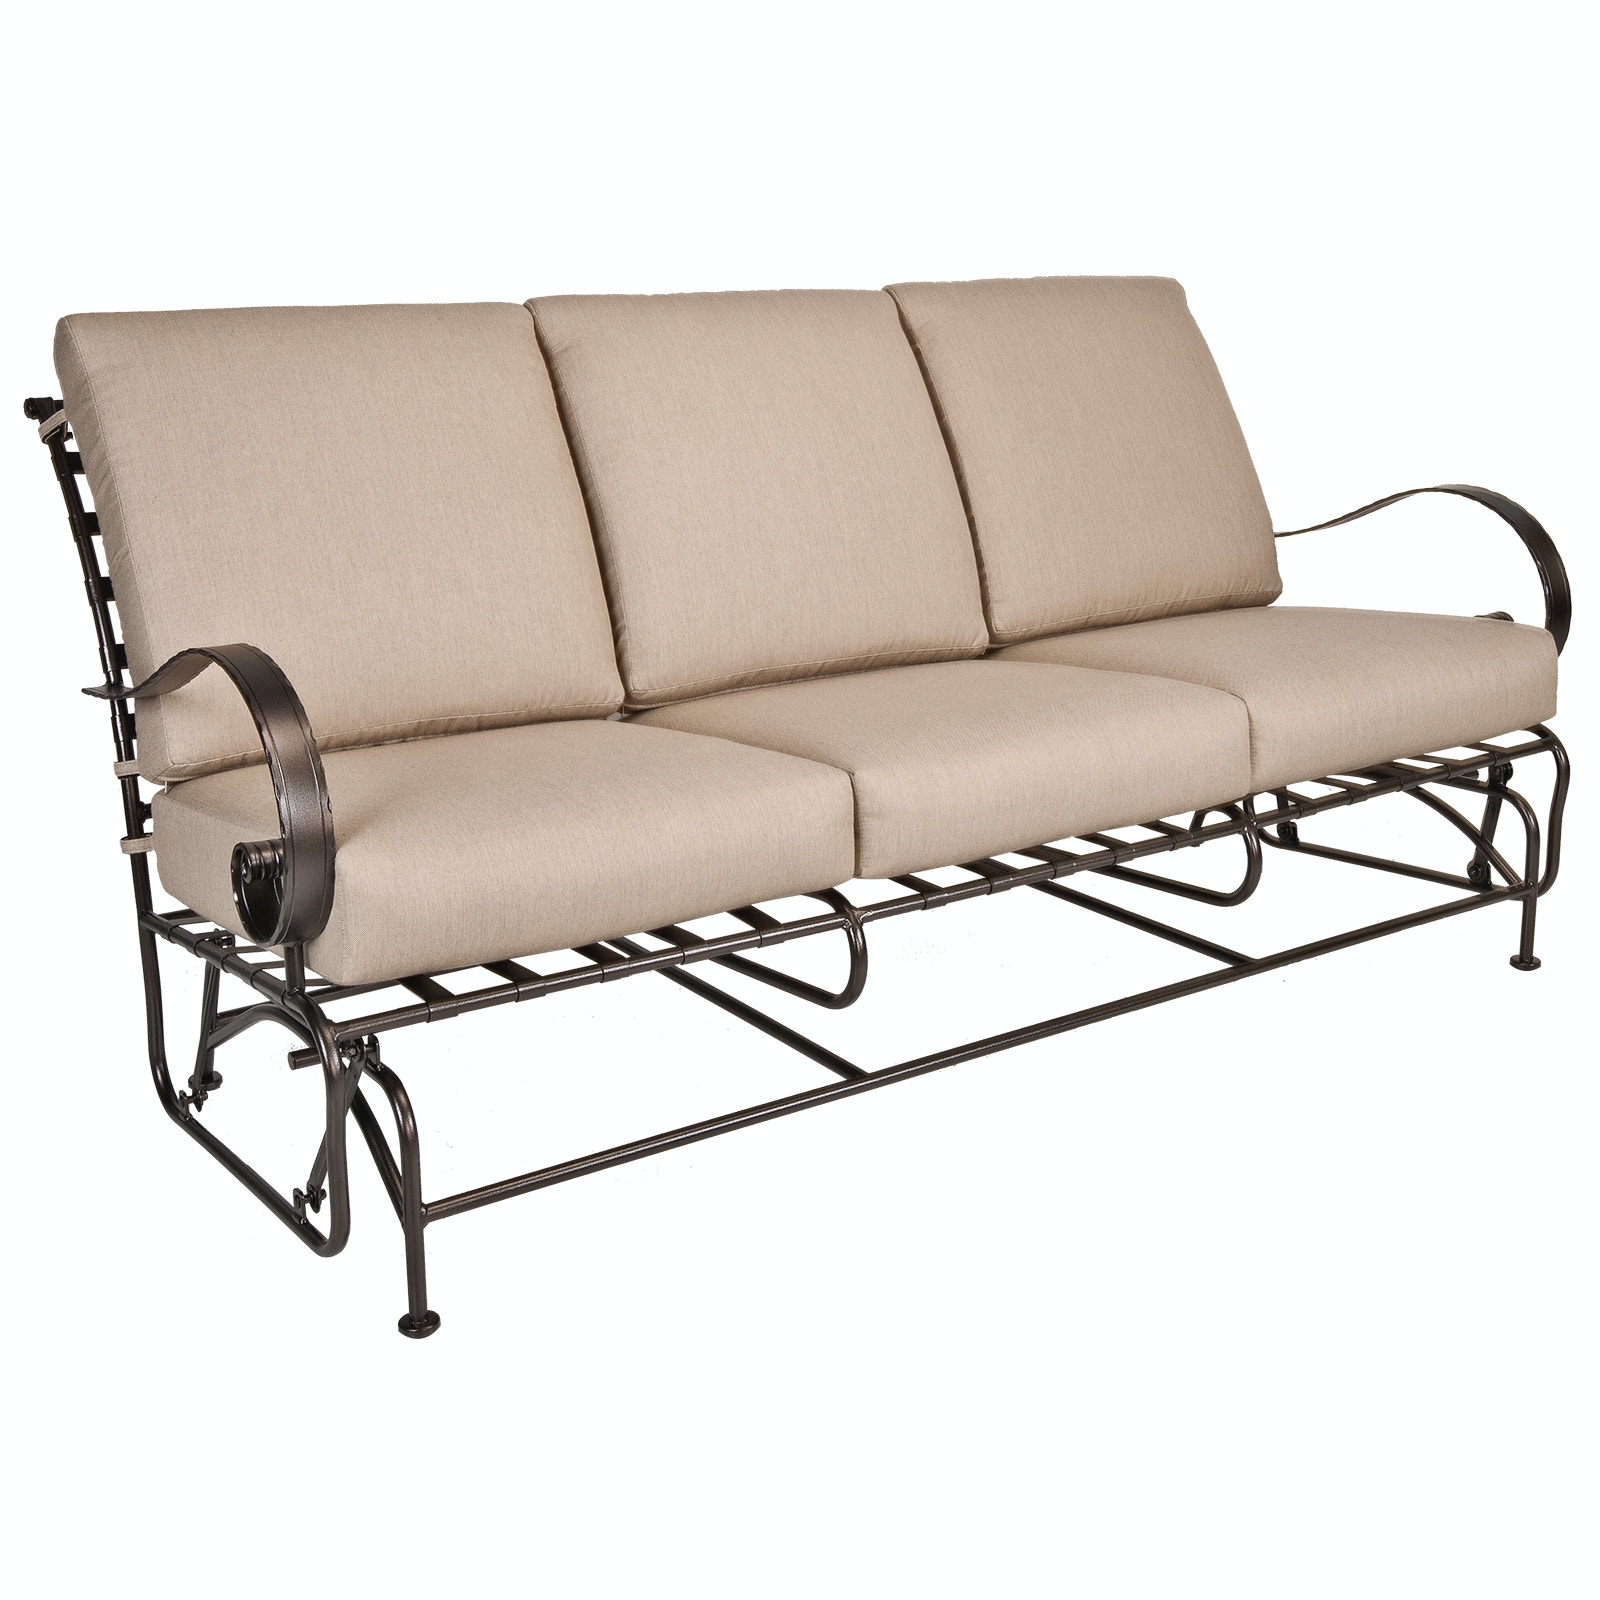 956 3GW OW Lee Furniture Classico W Sofa Glider